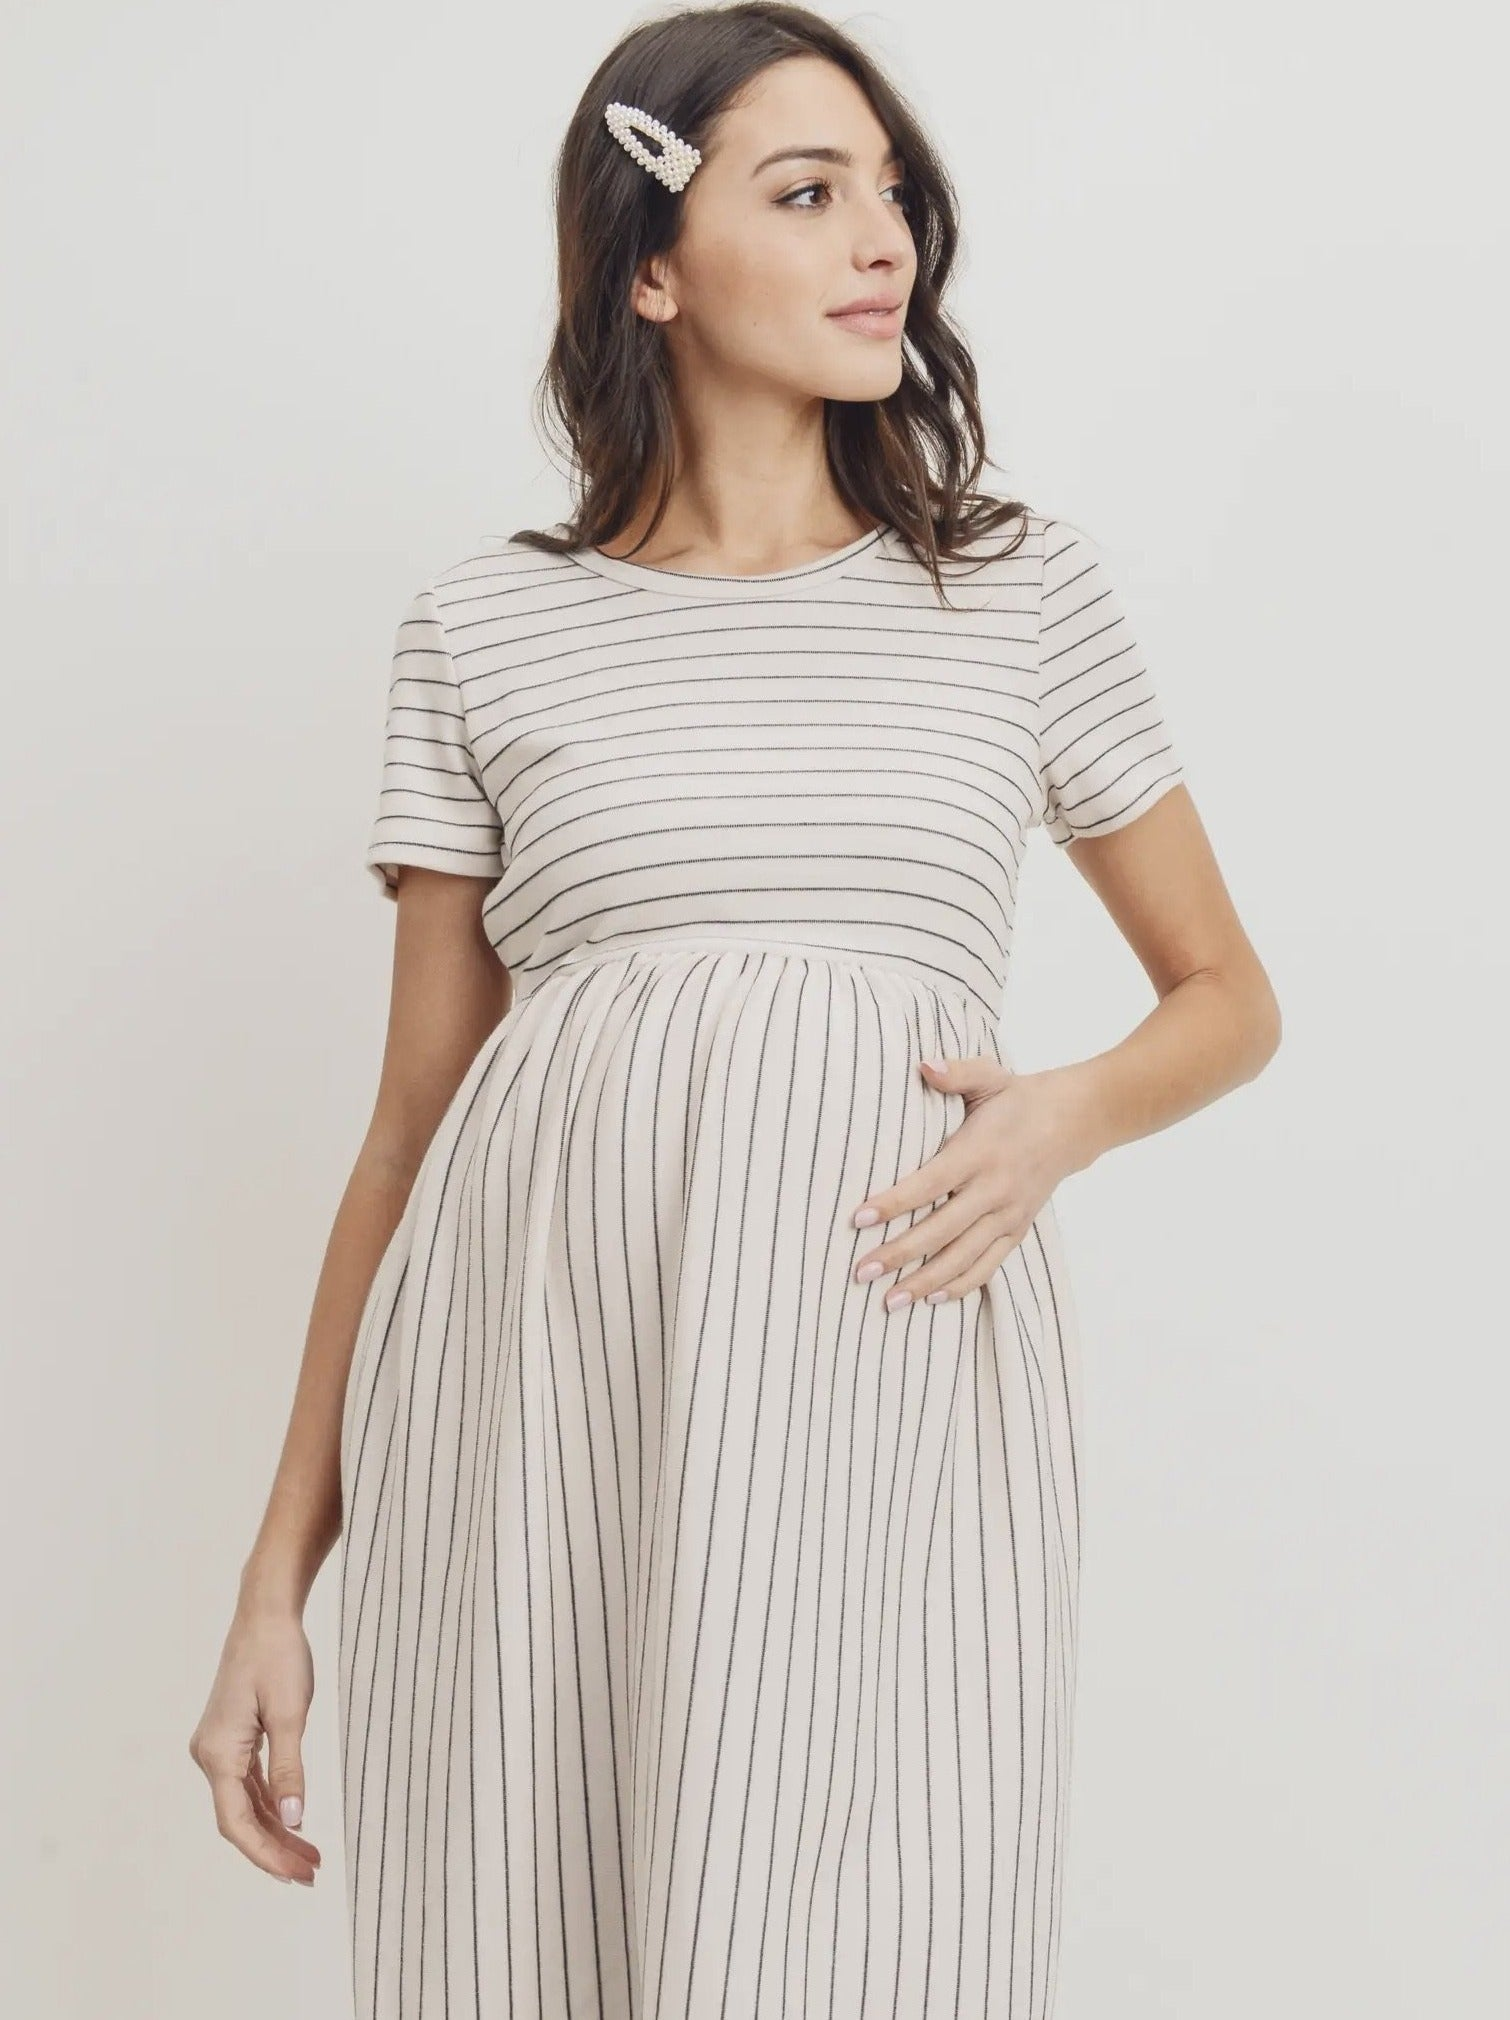 Short Sleeve Pocket Dress - Cream